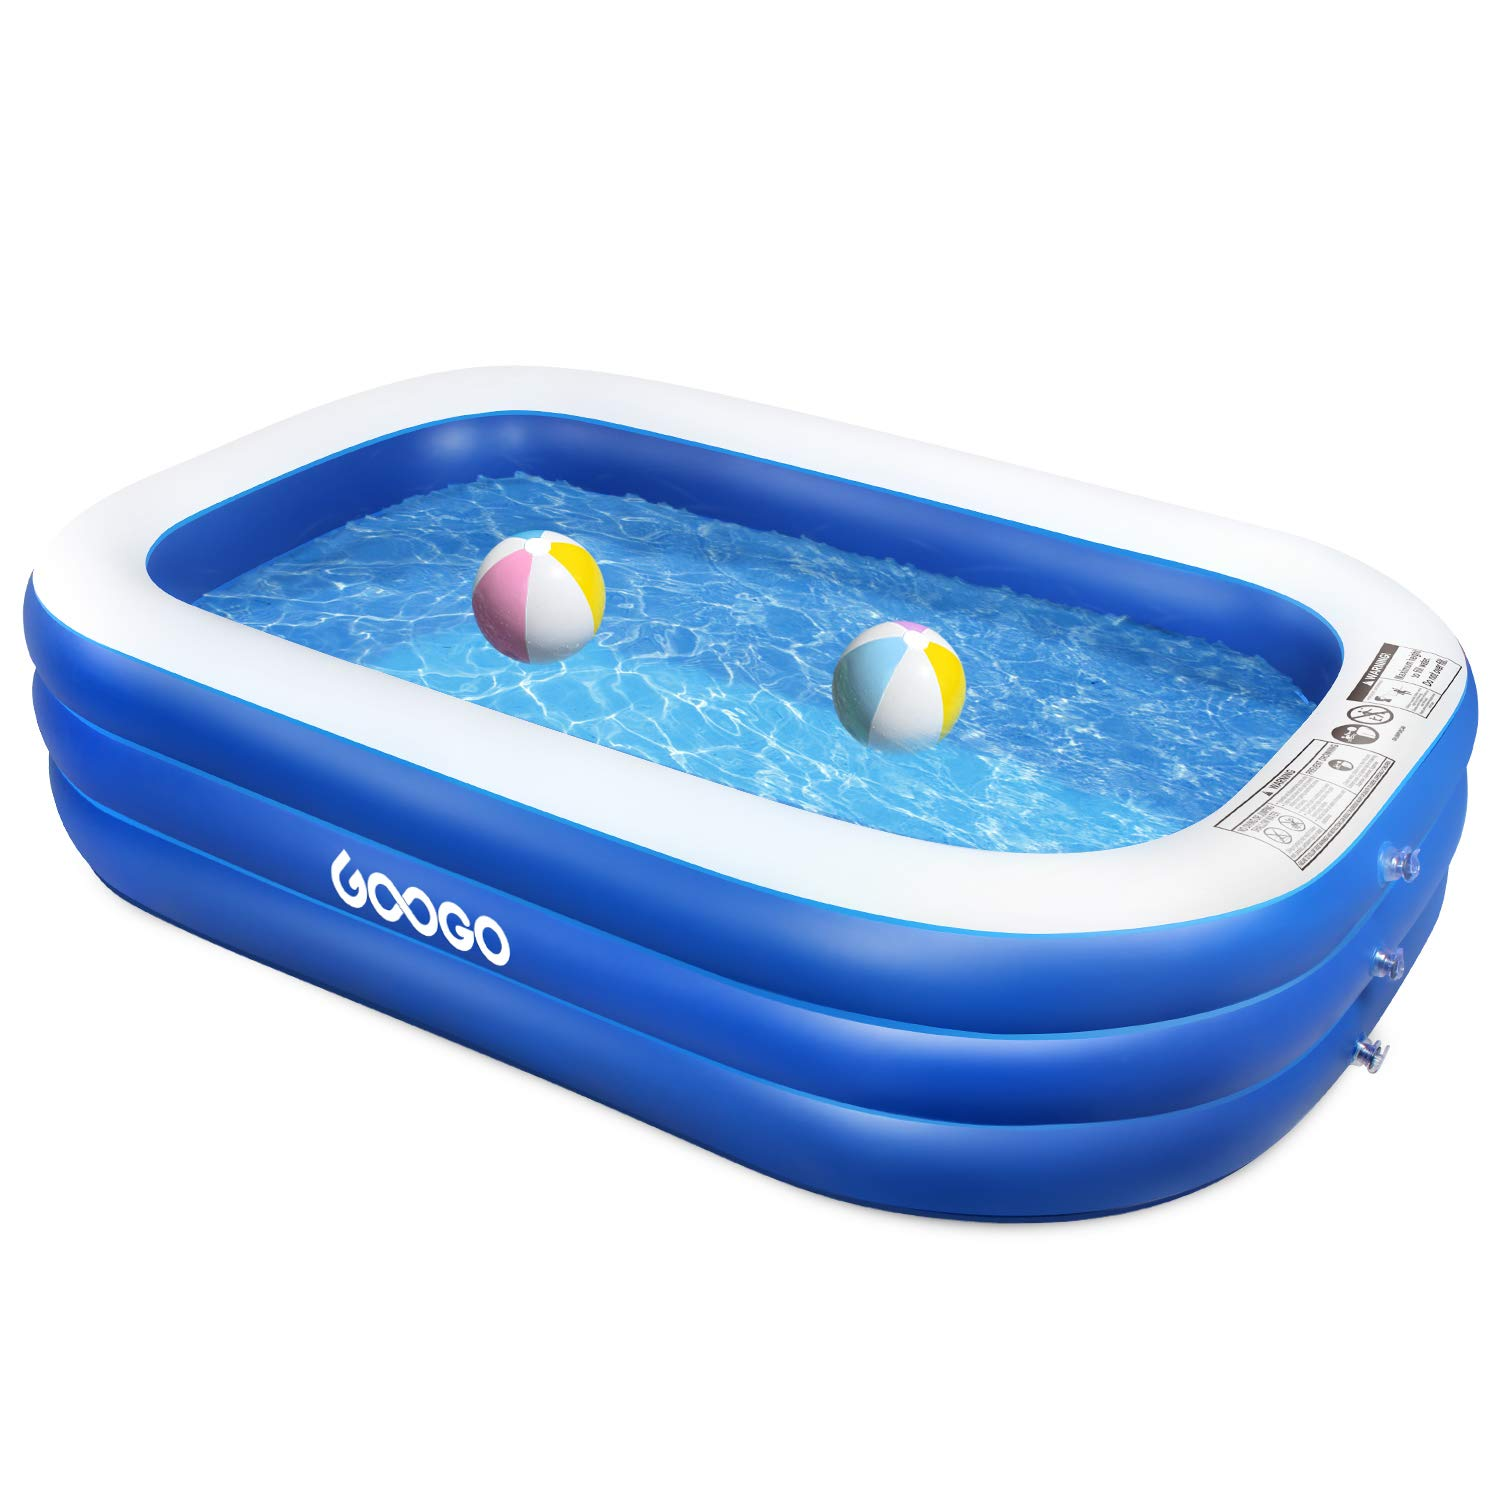 GOOGO Family Inflatable Swimming Pool, 92 x 56 x 20 inch Full-Sized Inflatable Lounge Pool for Kiddie, Kids, Adults, Easy Set Swimming Pool for Backyard, Summer Water Party, Outdoor